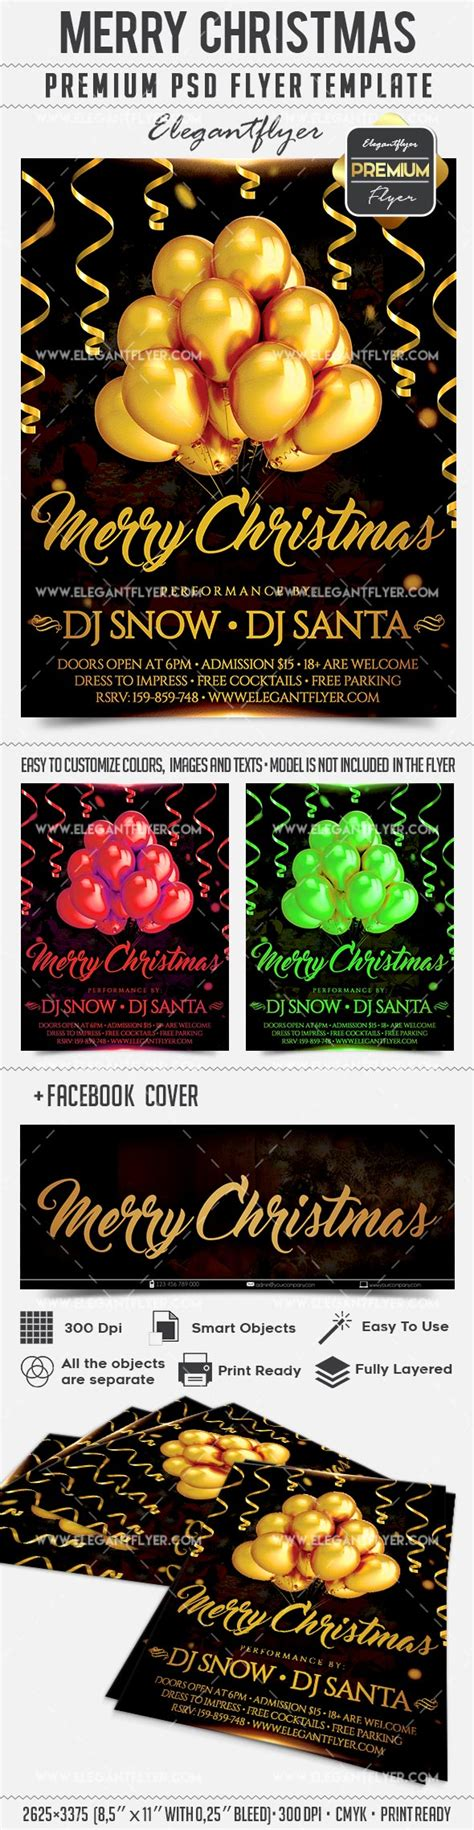 Download Merry Christmas Facebook Cover Psd Flyer Template Flyershitter Com Merry Flyer Template Free